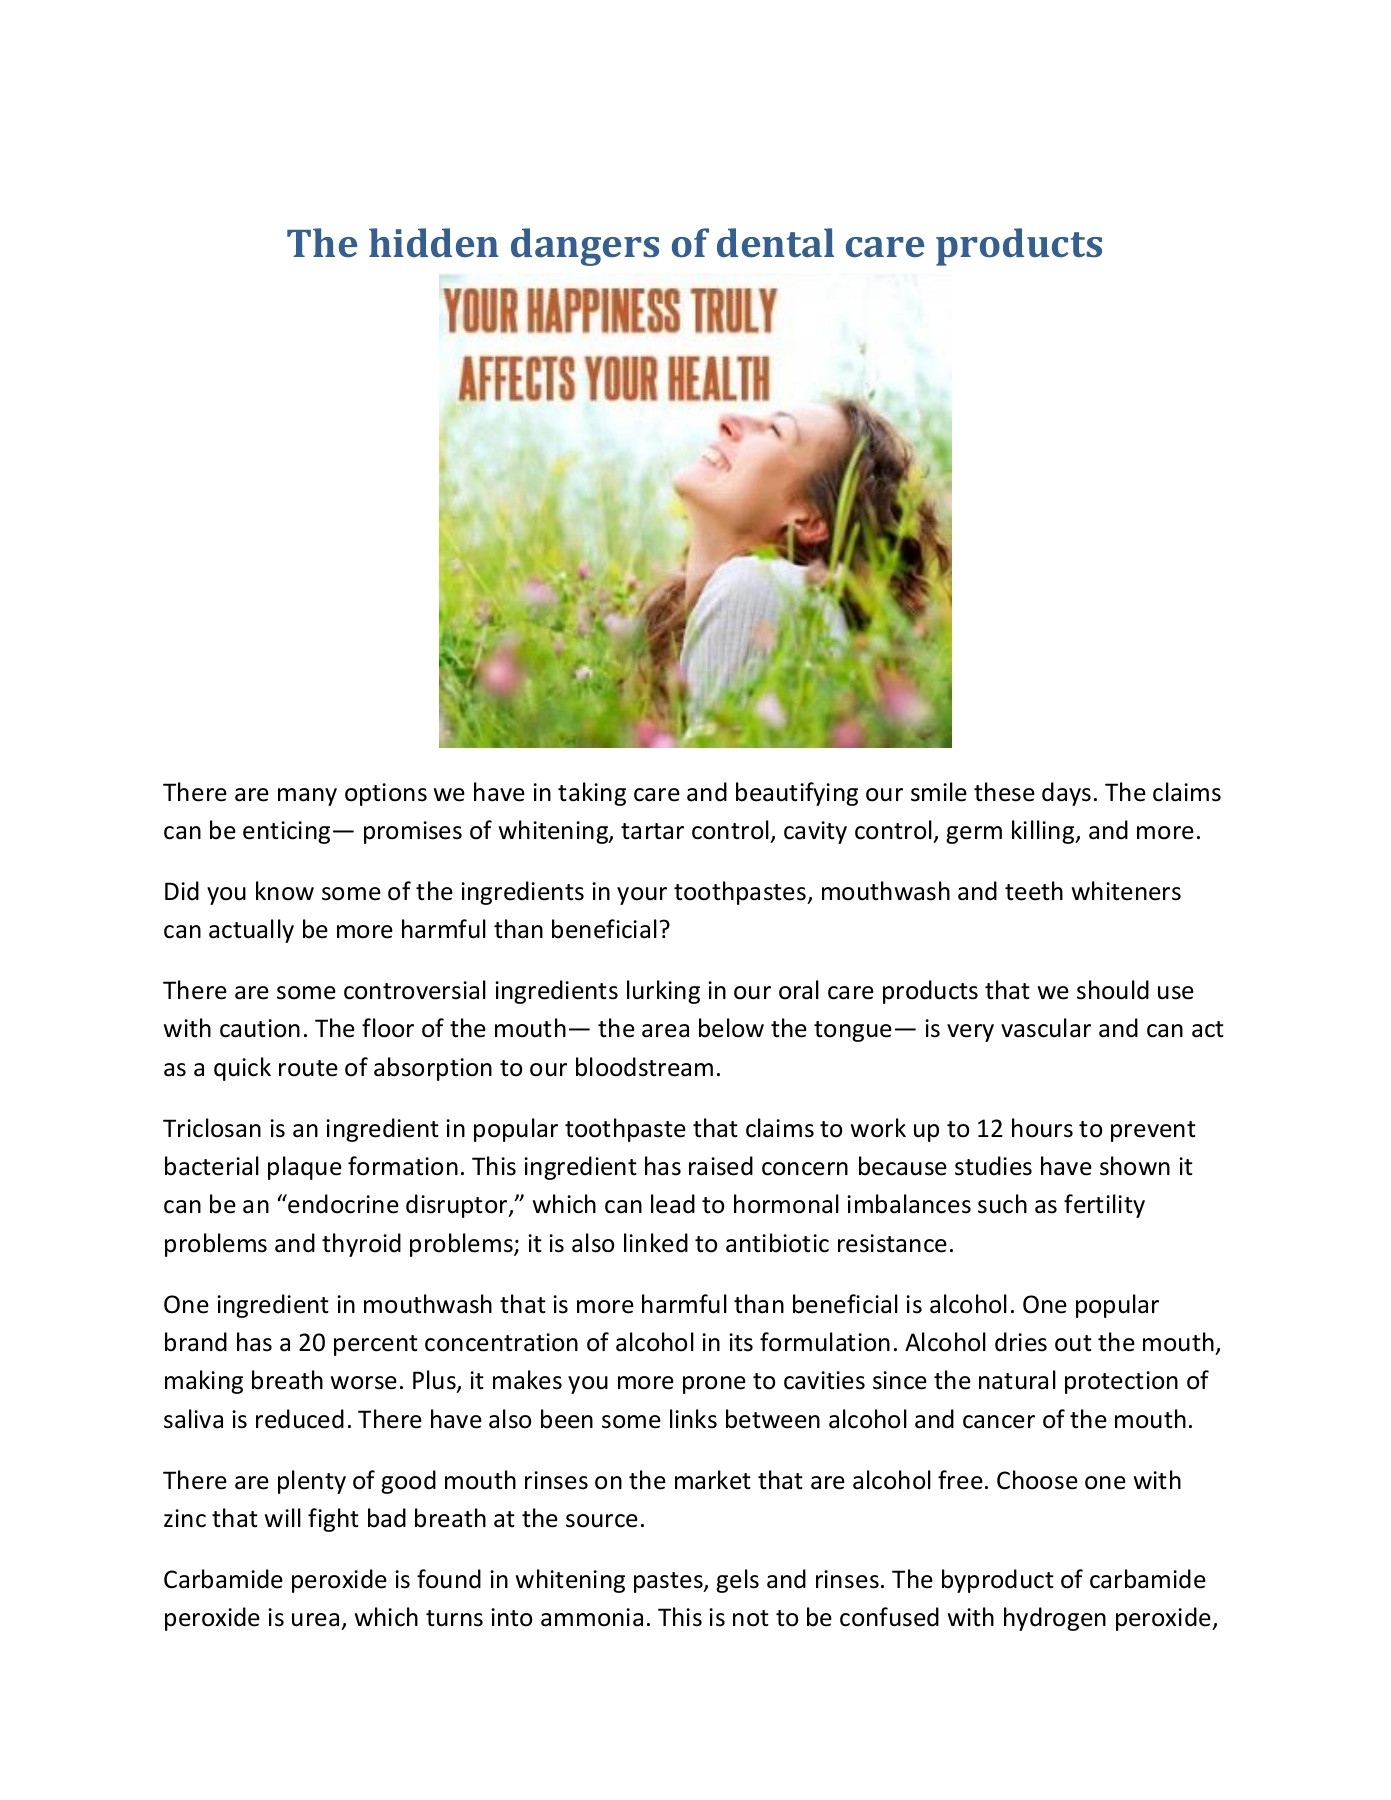 The hidden dangers of dental care products Pages 1 - 2 - Text